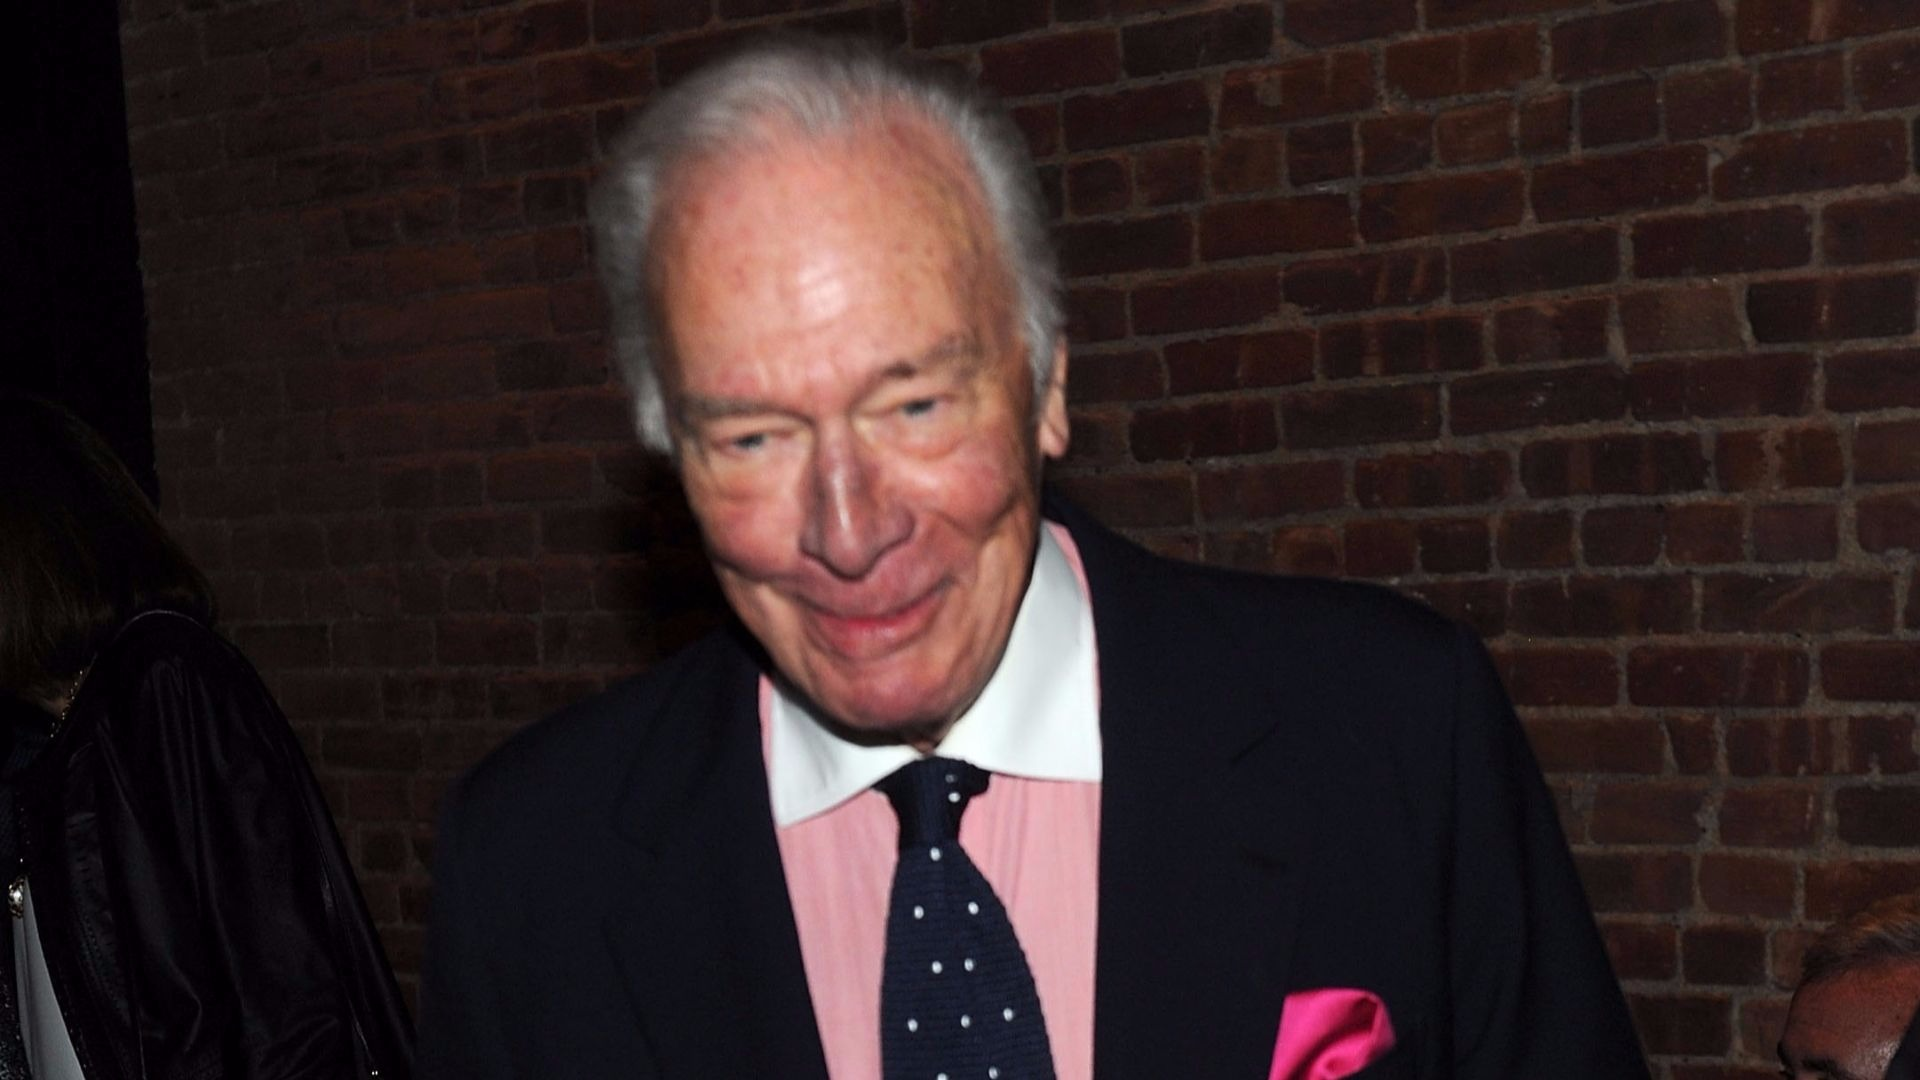 Kevin Spacey's replacement, Christopher Plummer.